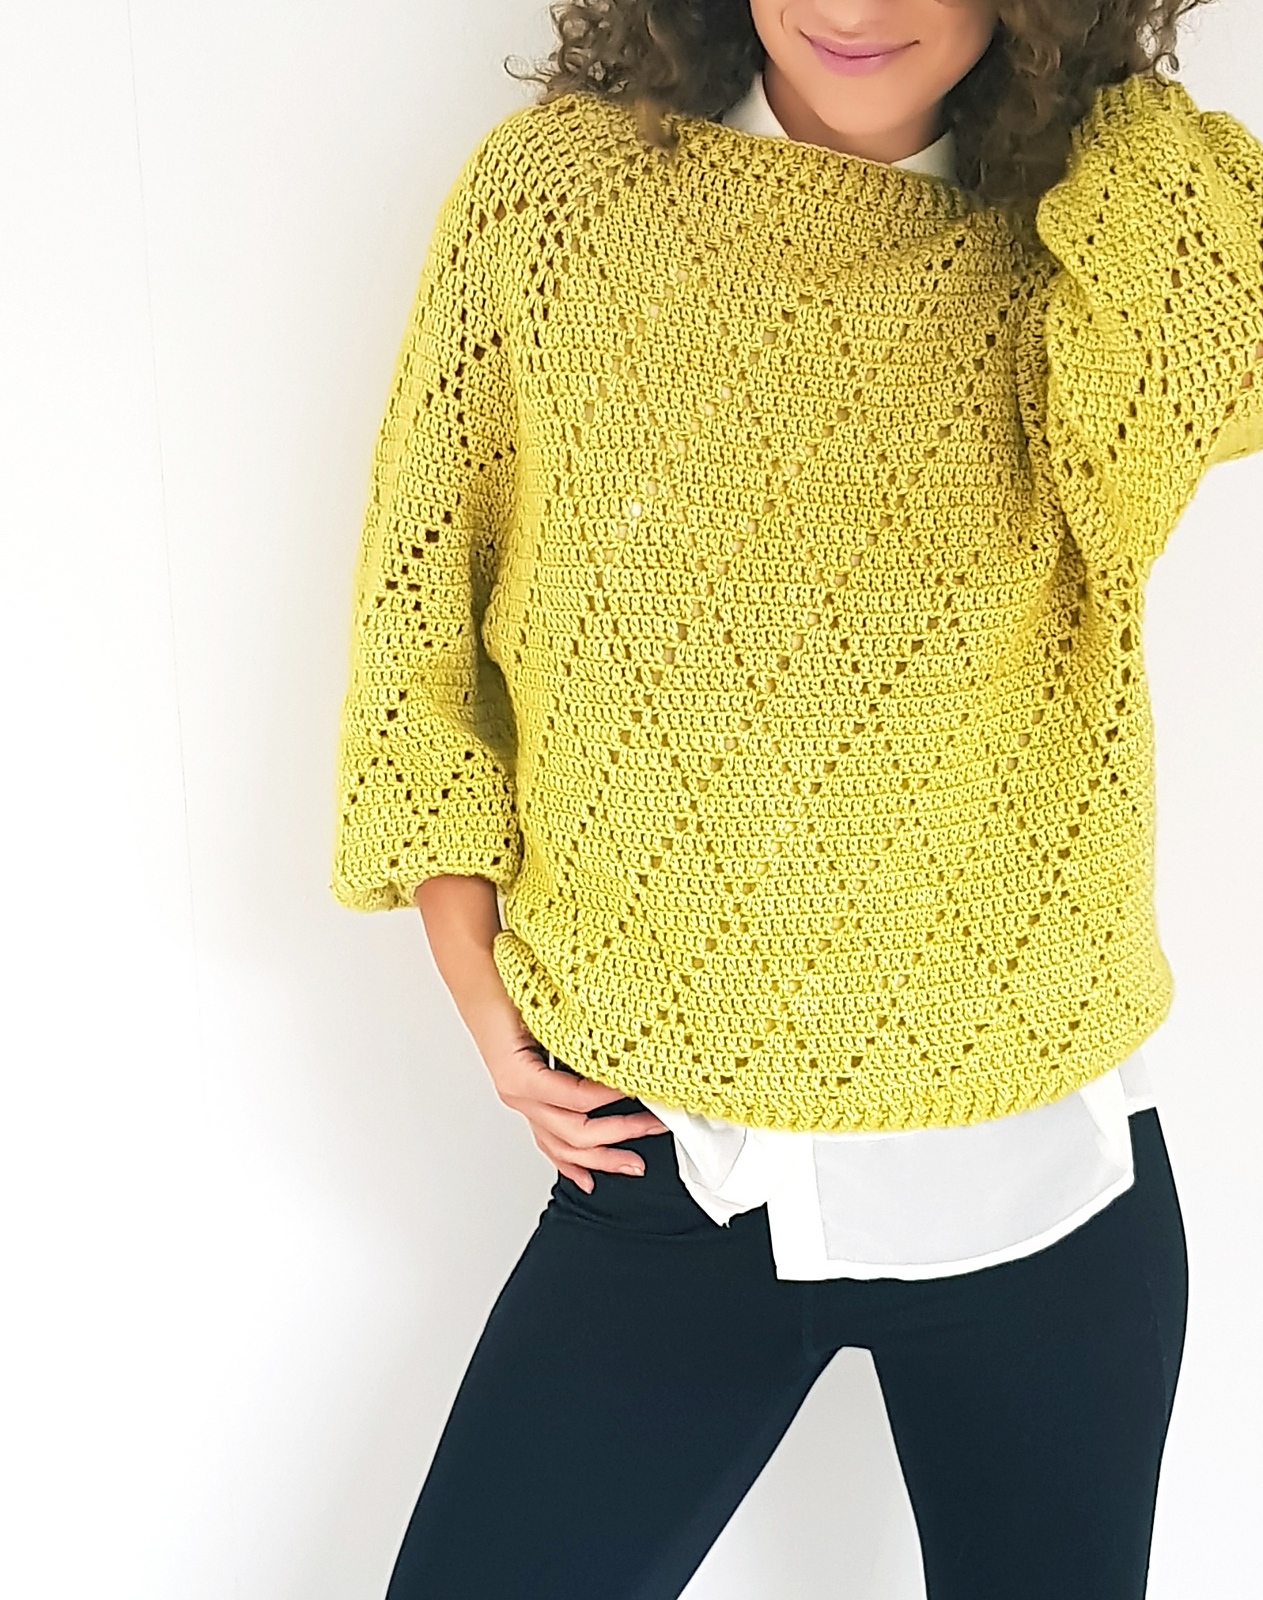 Crochet Pullover Pattern- So Easy , Soon You'll Know It Off By Heart